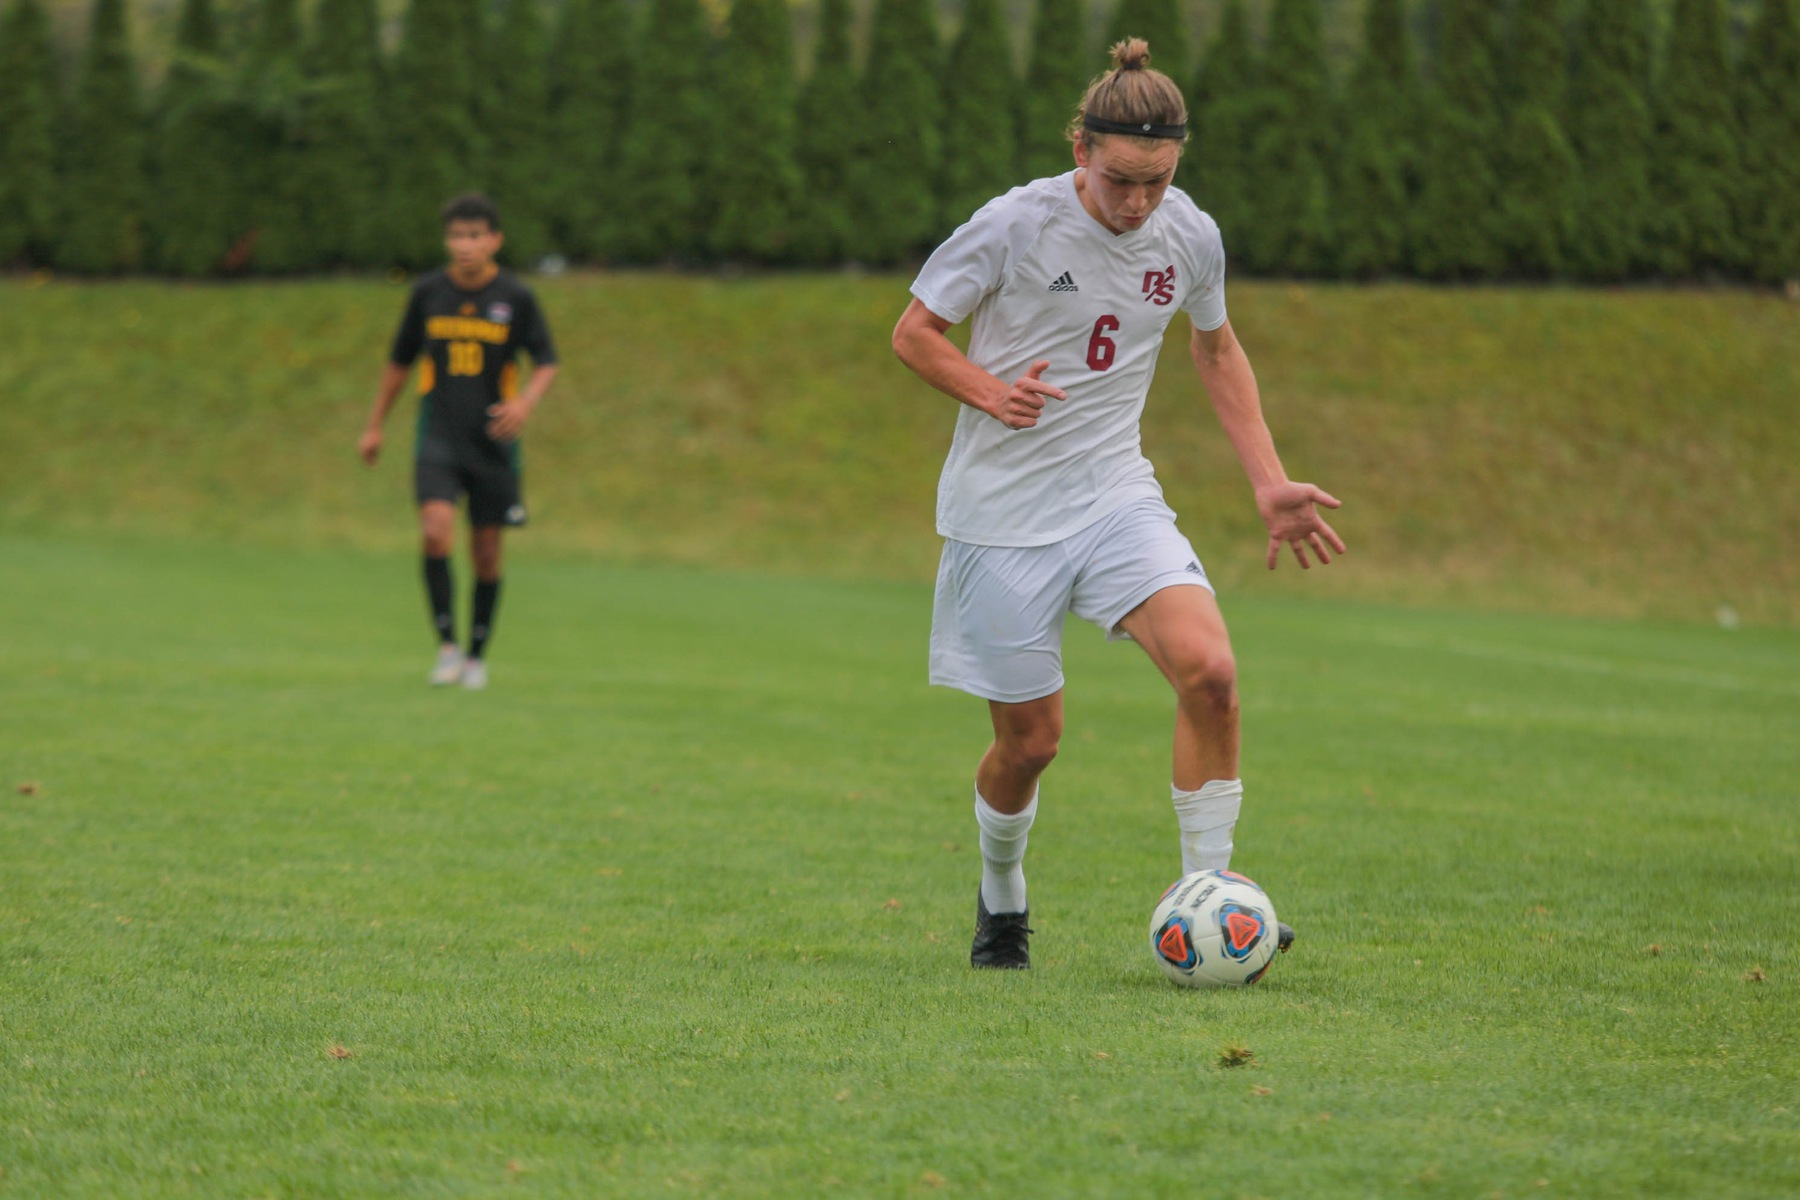 Babiak nets game-winning goal in overtime at George Fox